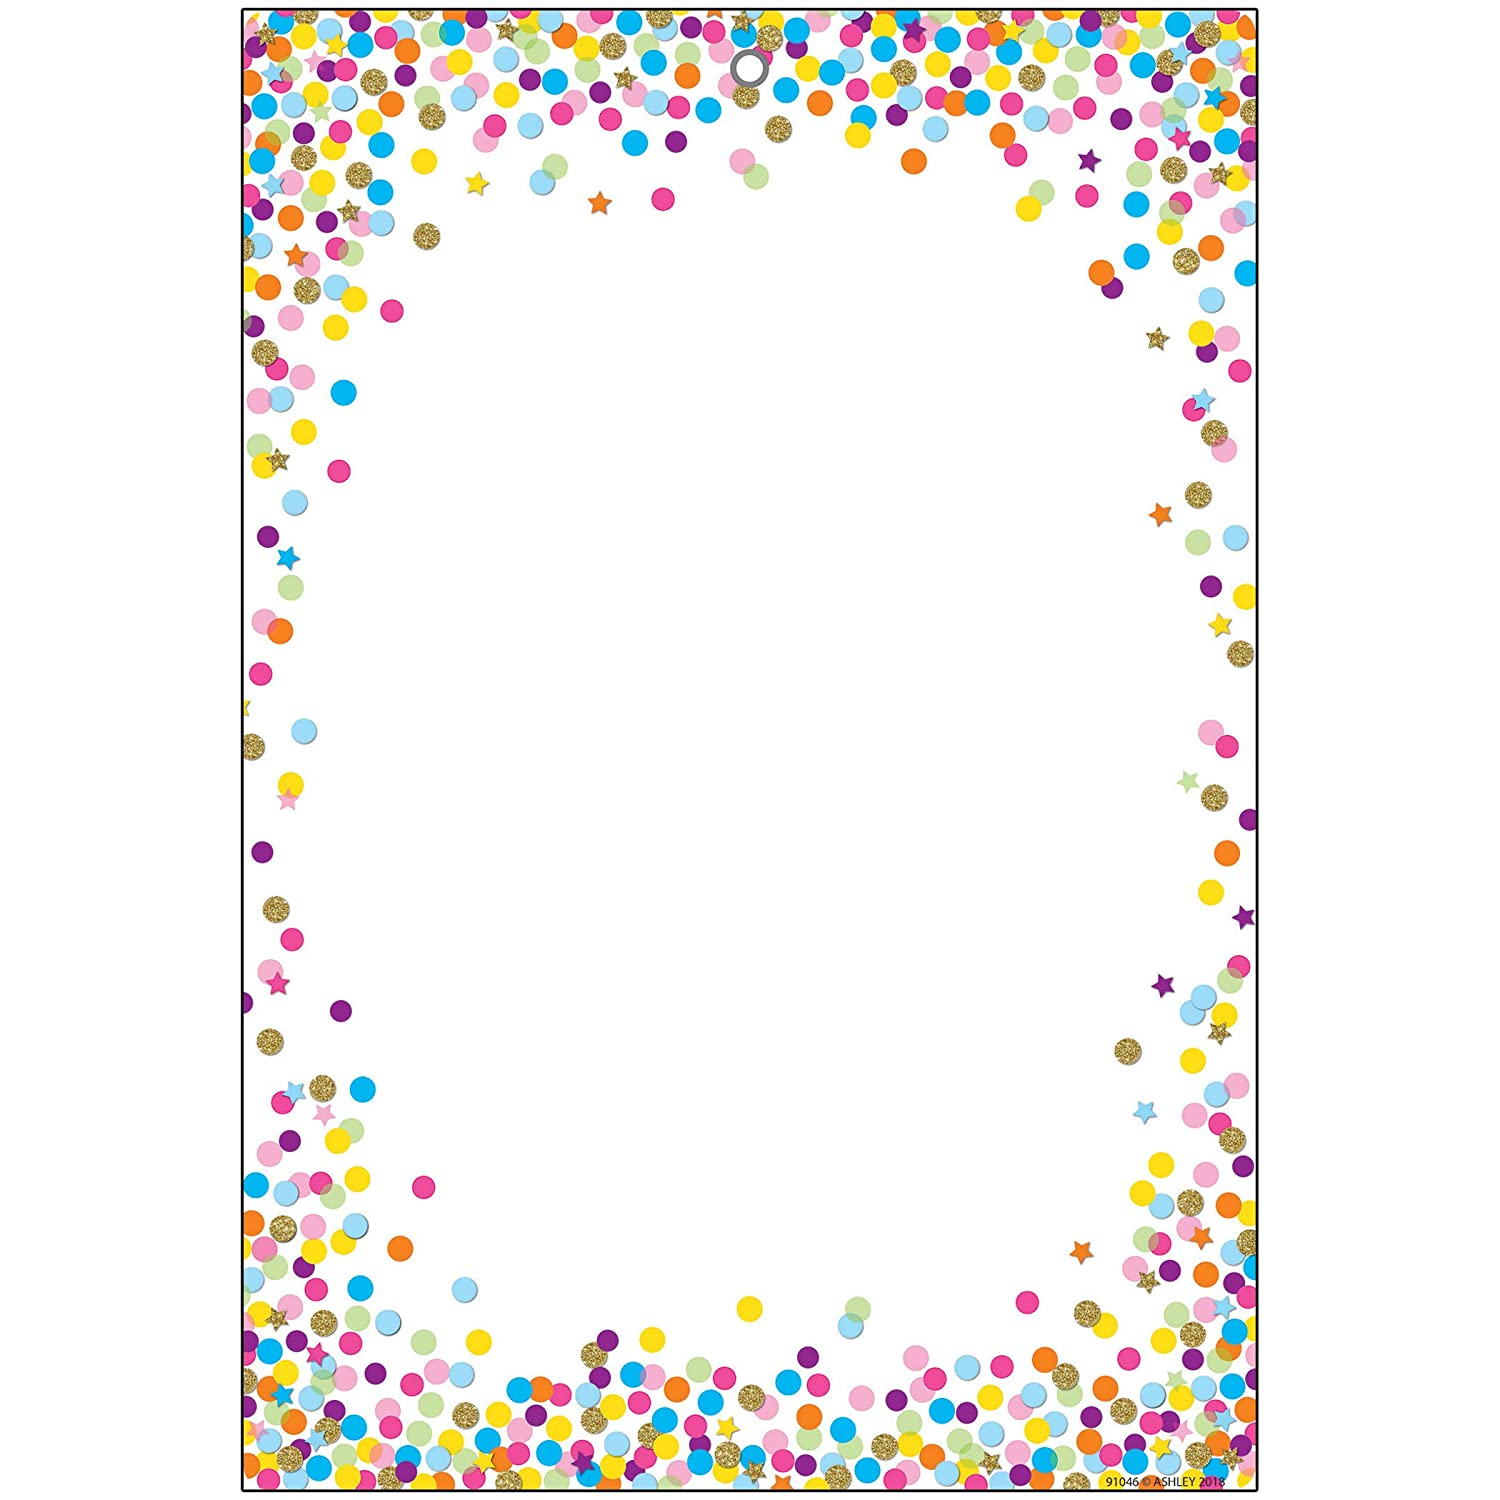 Ashley Productions ASH91046 Smart Poly Chart, Confetti Blank, Polypropylene (PP)/Steel, 13 x 19